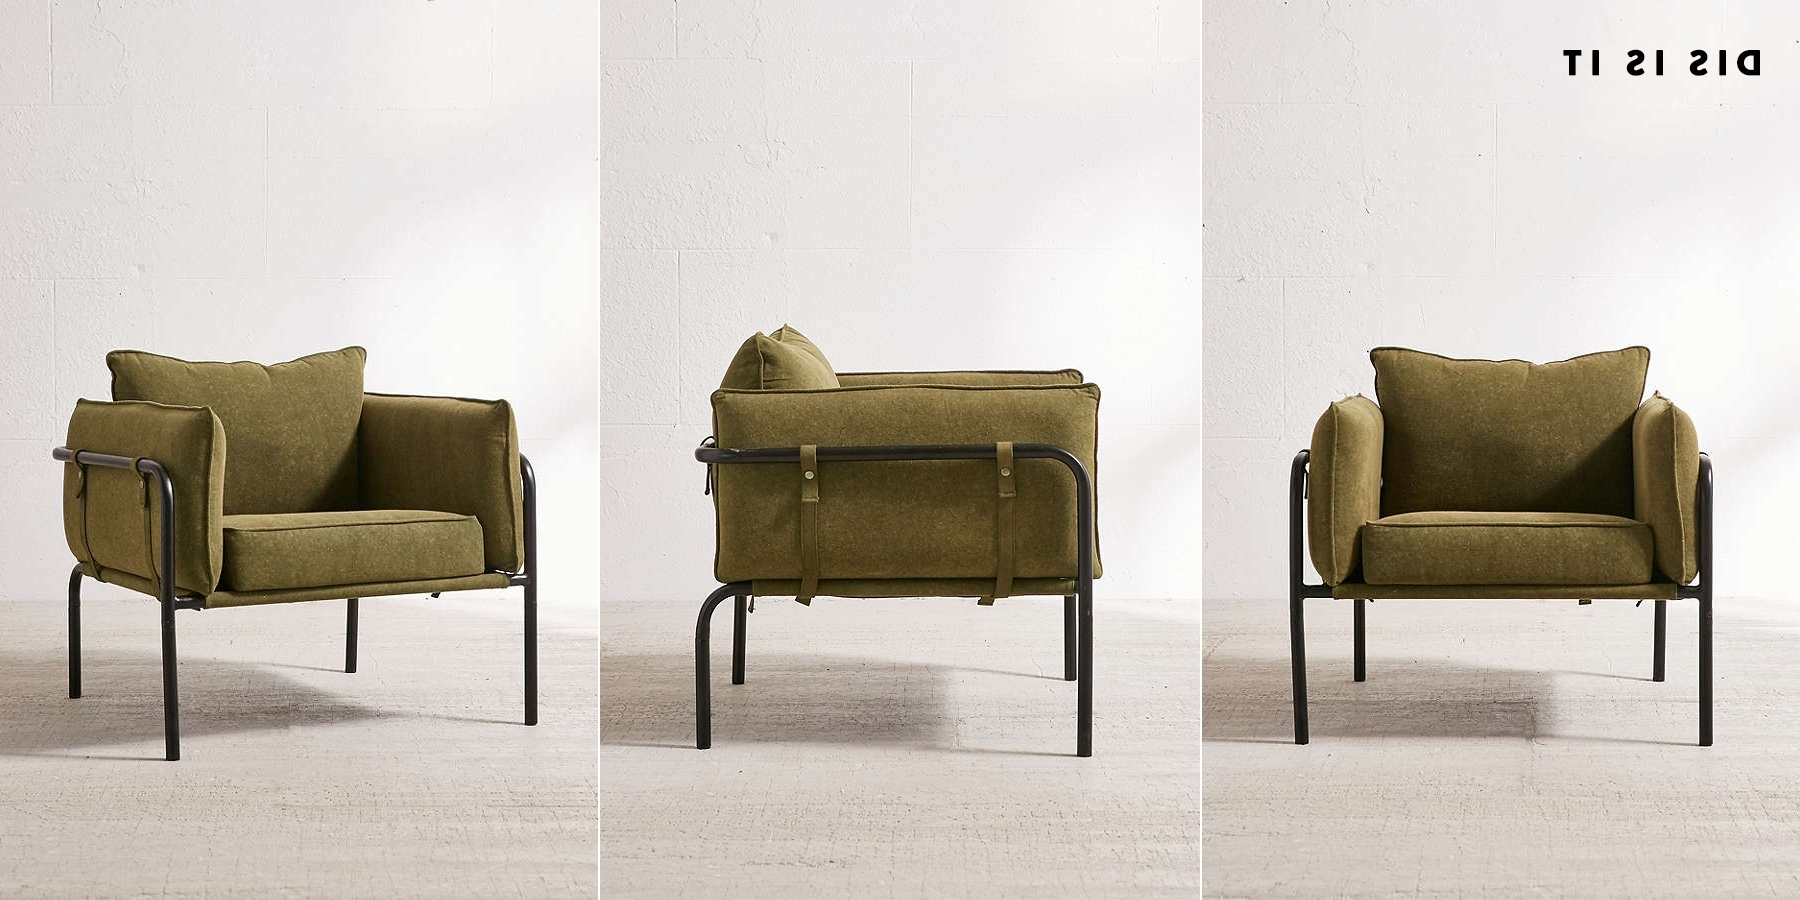 Army Green Chairs For The Fireplace Intended For Latest Green Sofa Chairs (View 1 of 15)